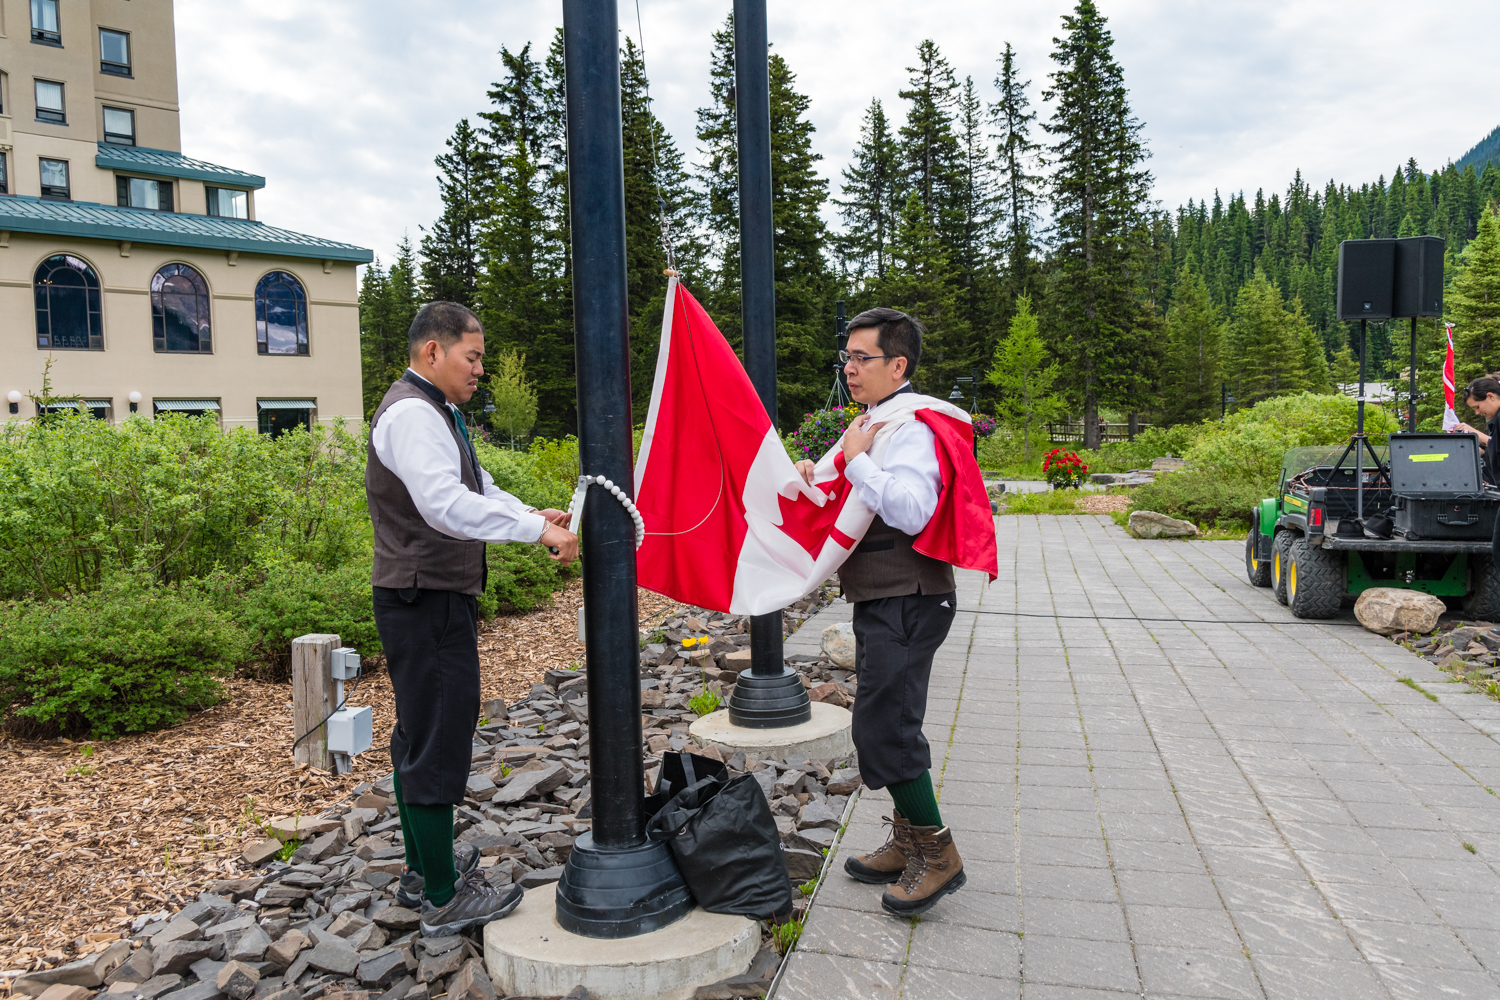 Preparing to raise the Canadian flag.  Quite an honour to be fair.  This was the second of the Canada day activities at Lake Louise.